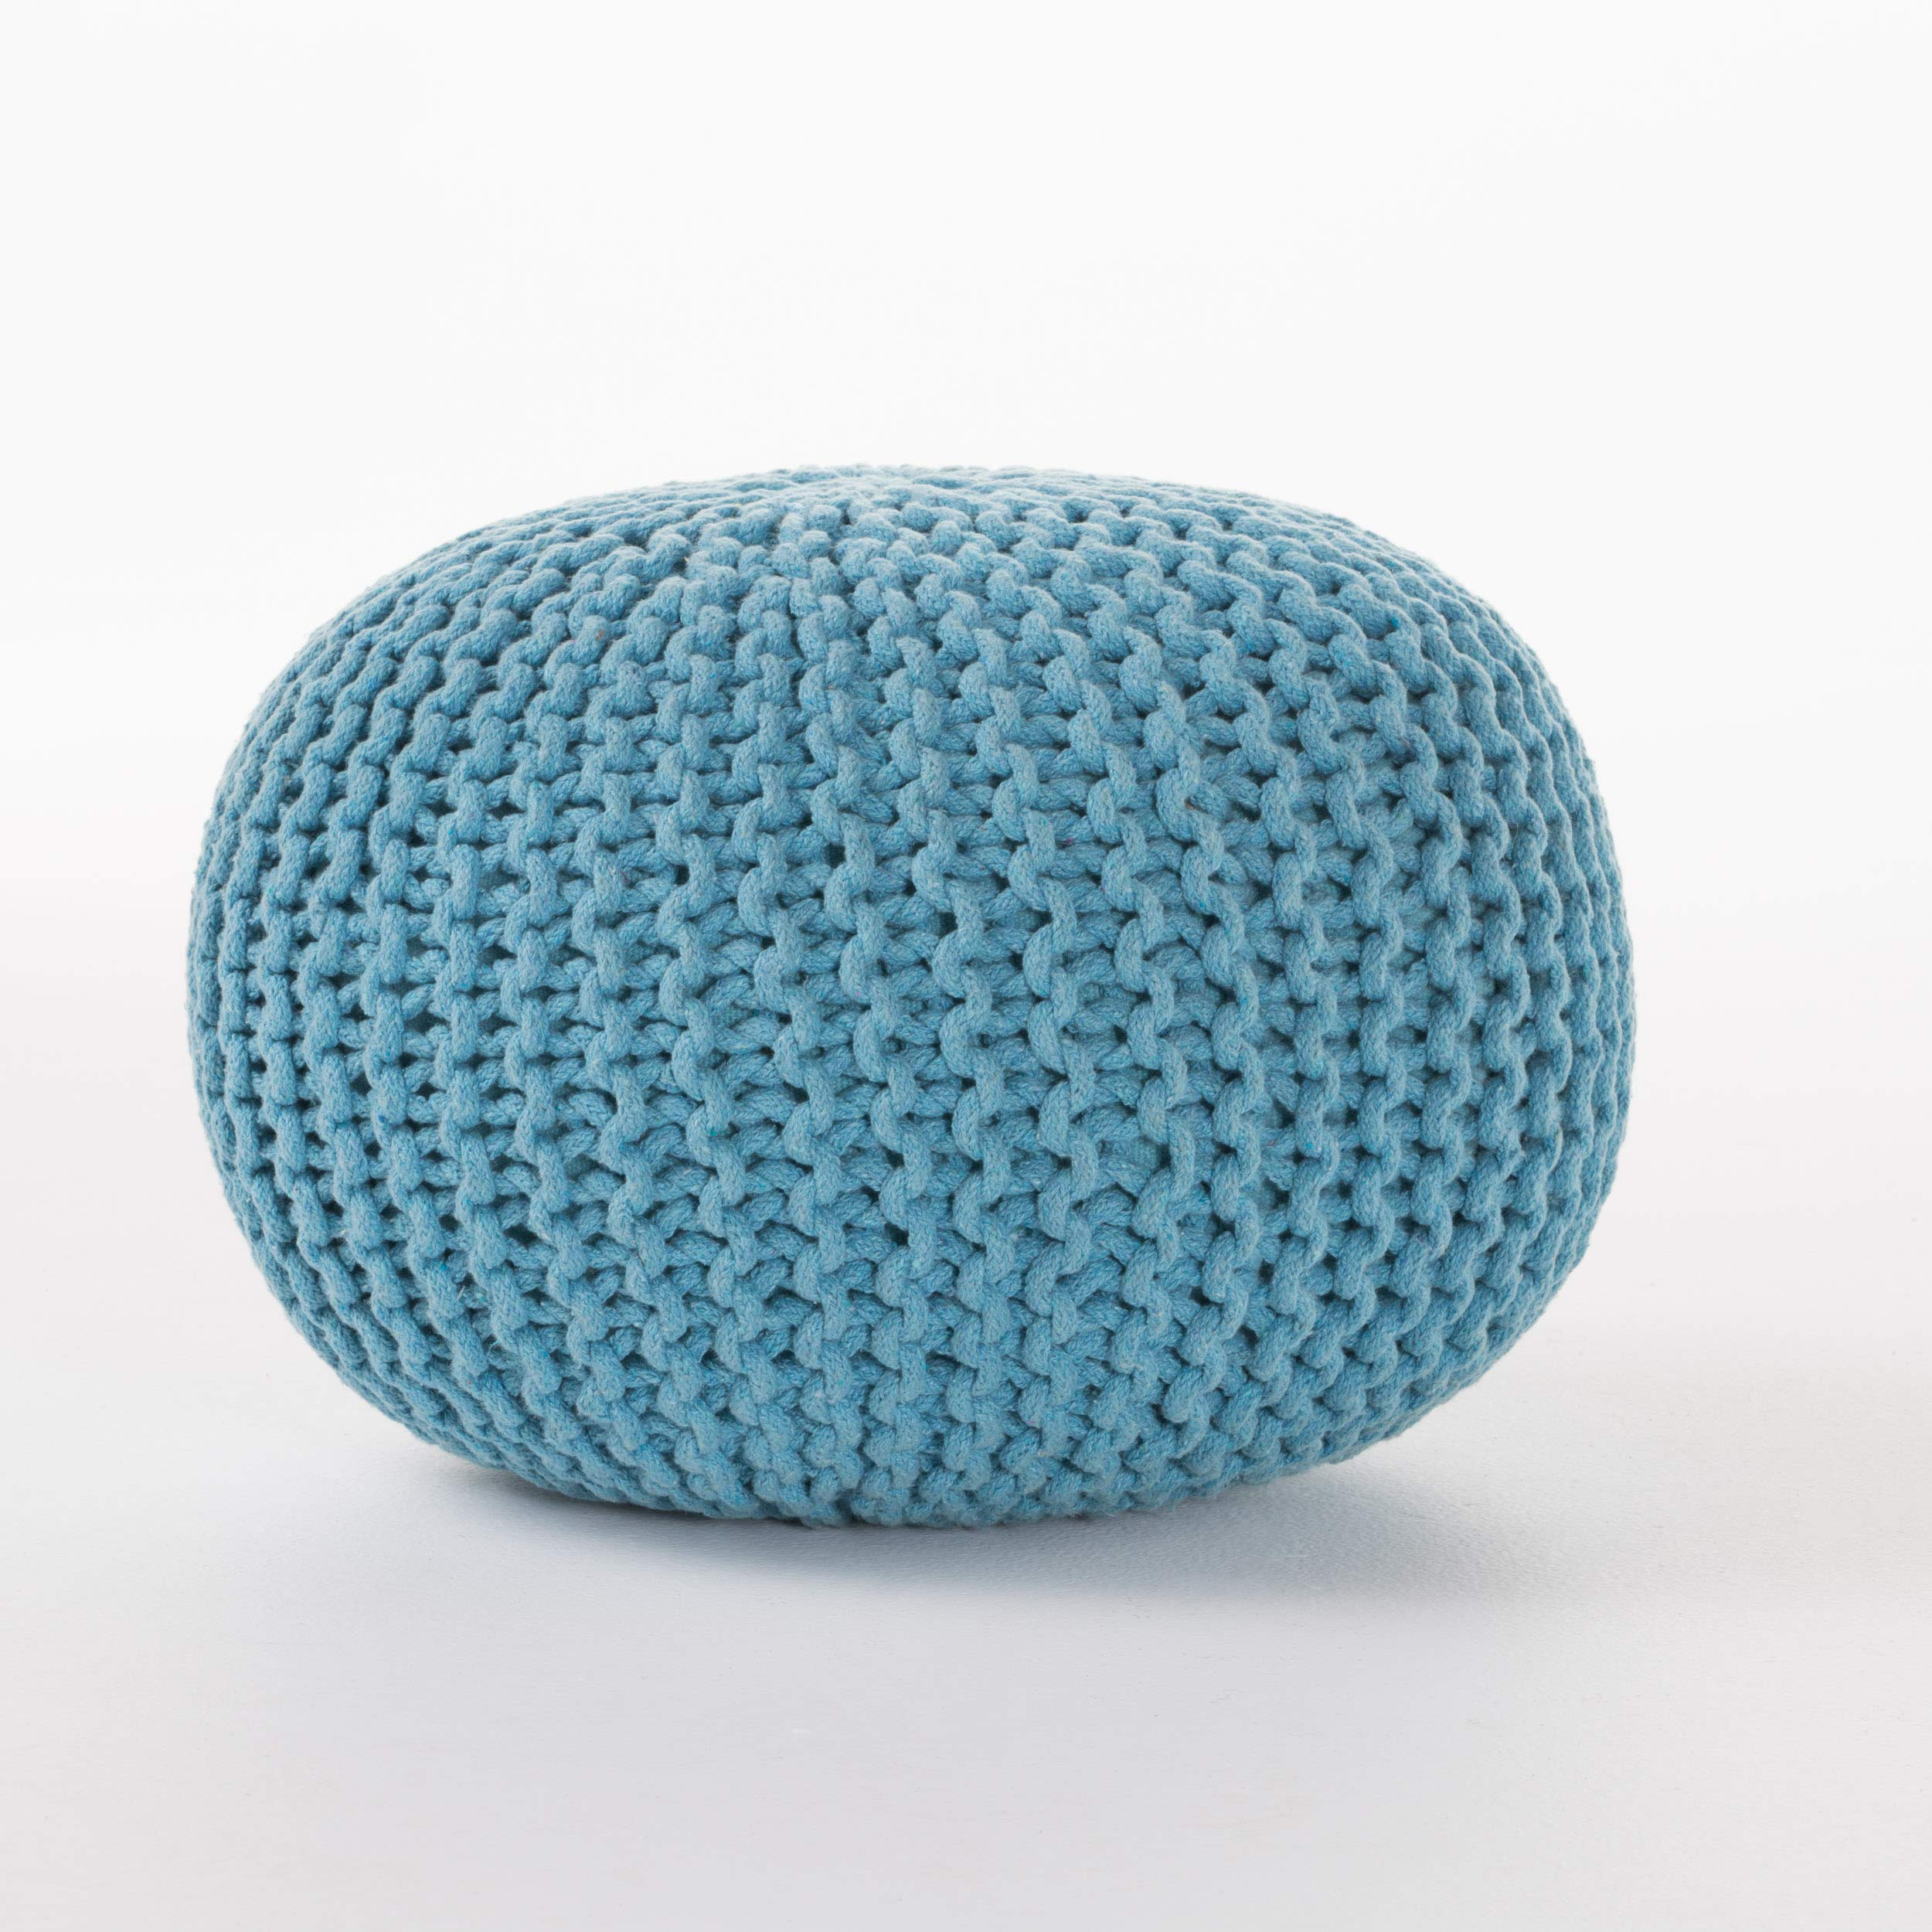 Christopher Knight Home Poona Hand Knitted Artisan Round Pouf (Aqua) by Christopher Knight Home